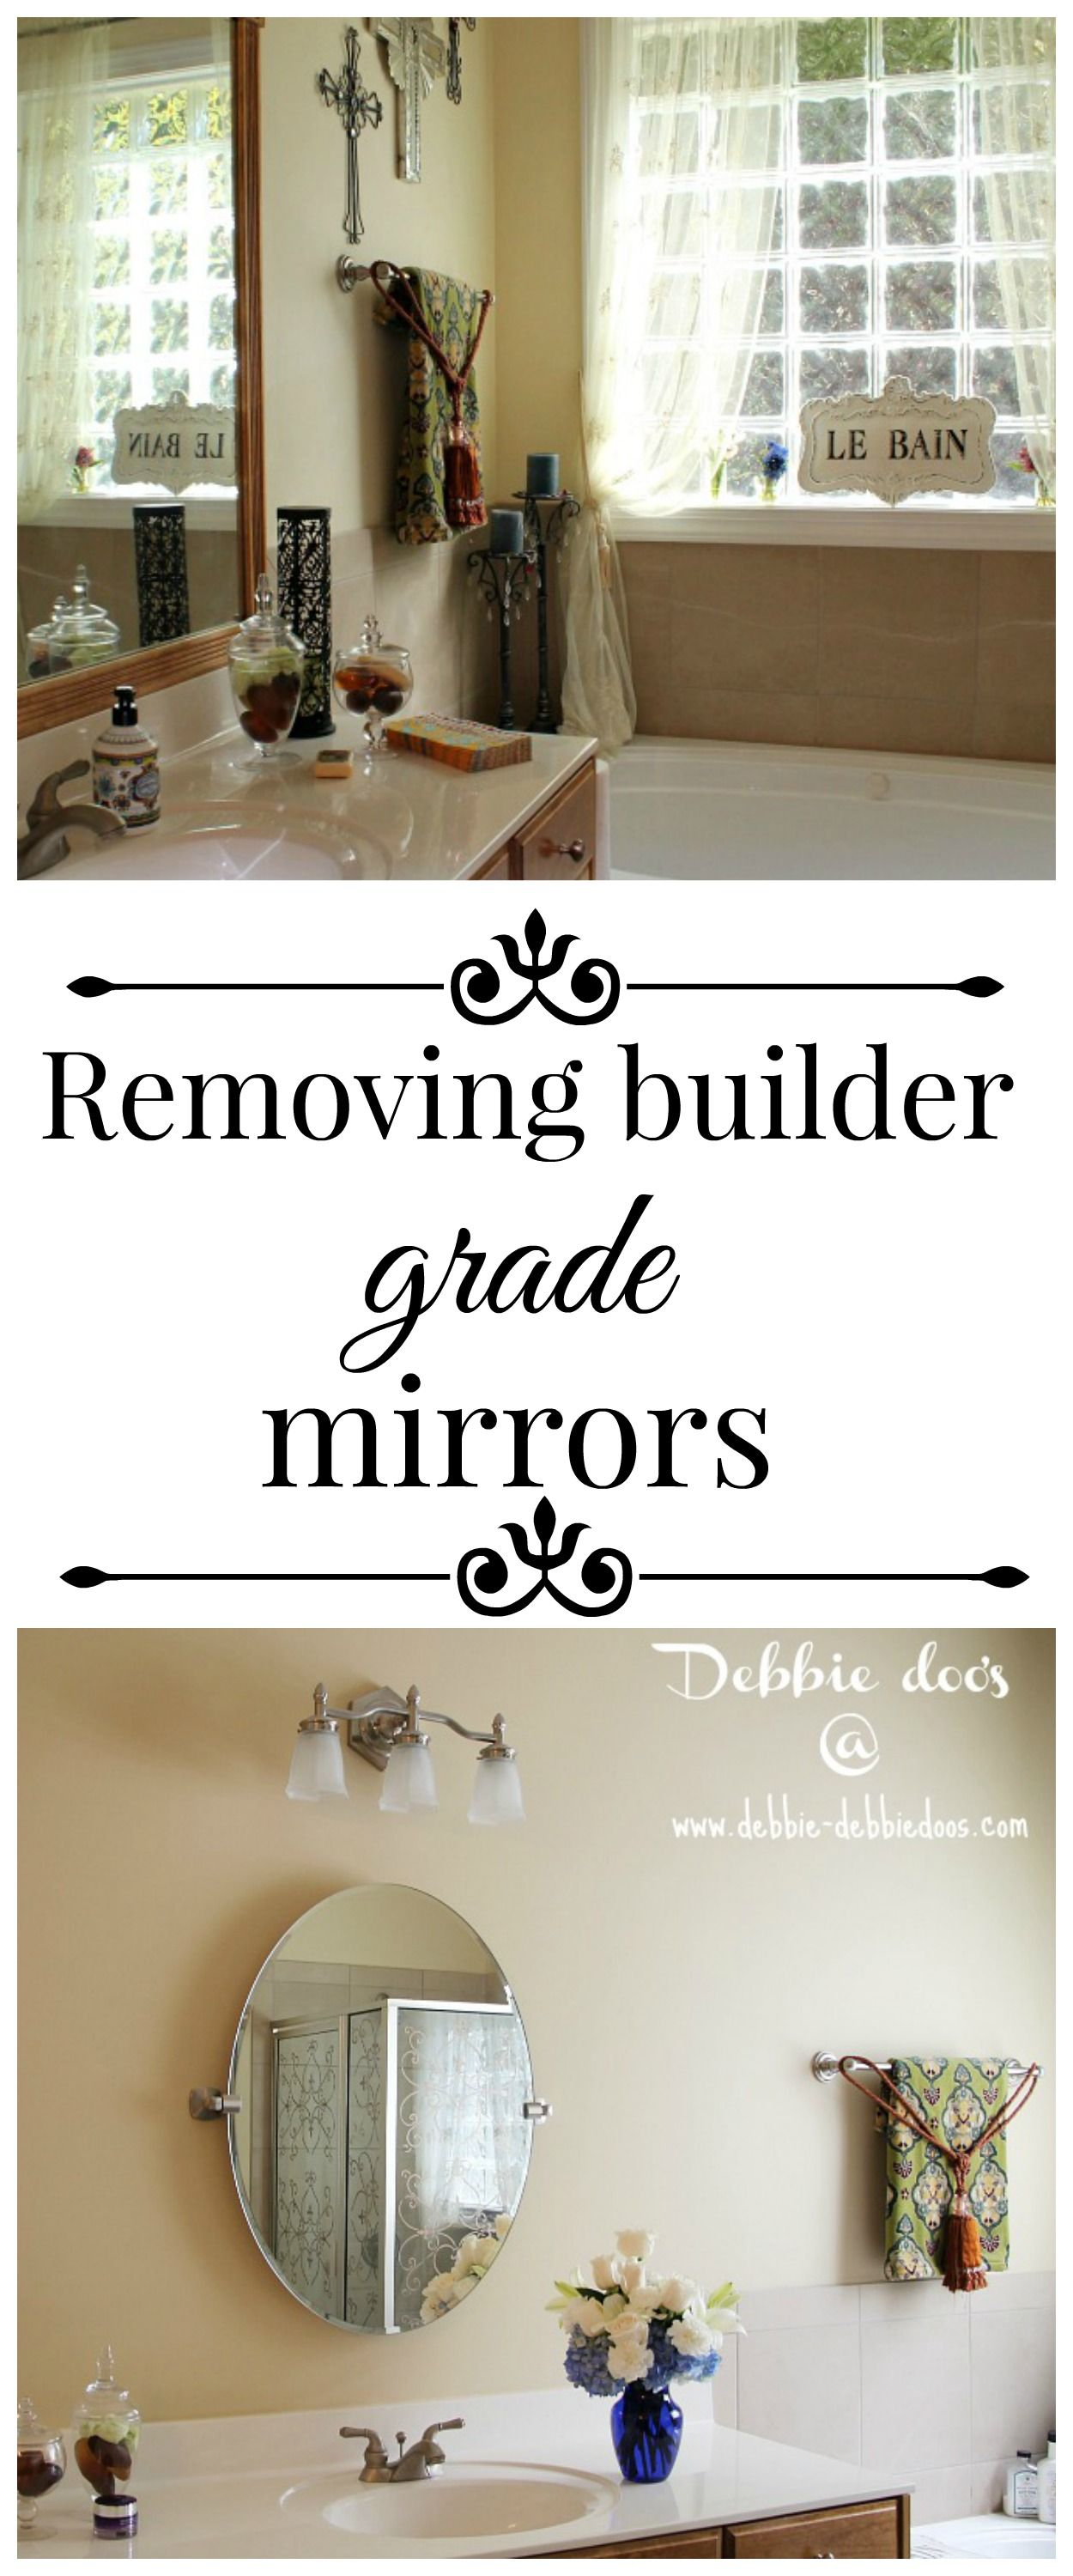 Removing builder grade bathroom mirrors | Pinterest | Builder grade ...